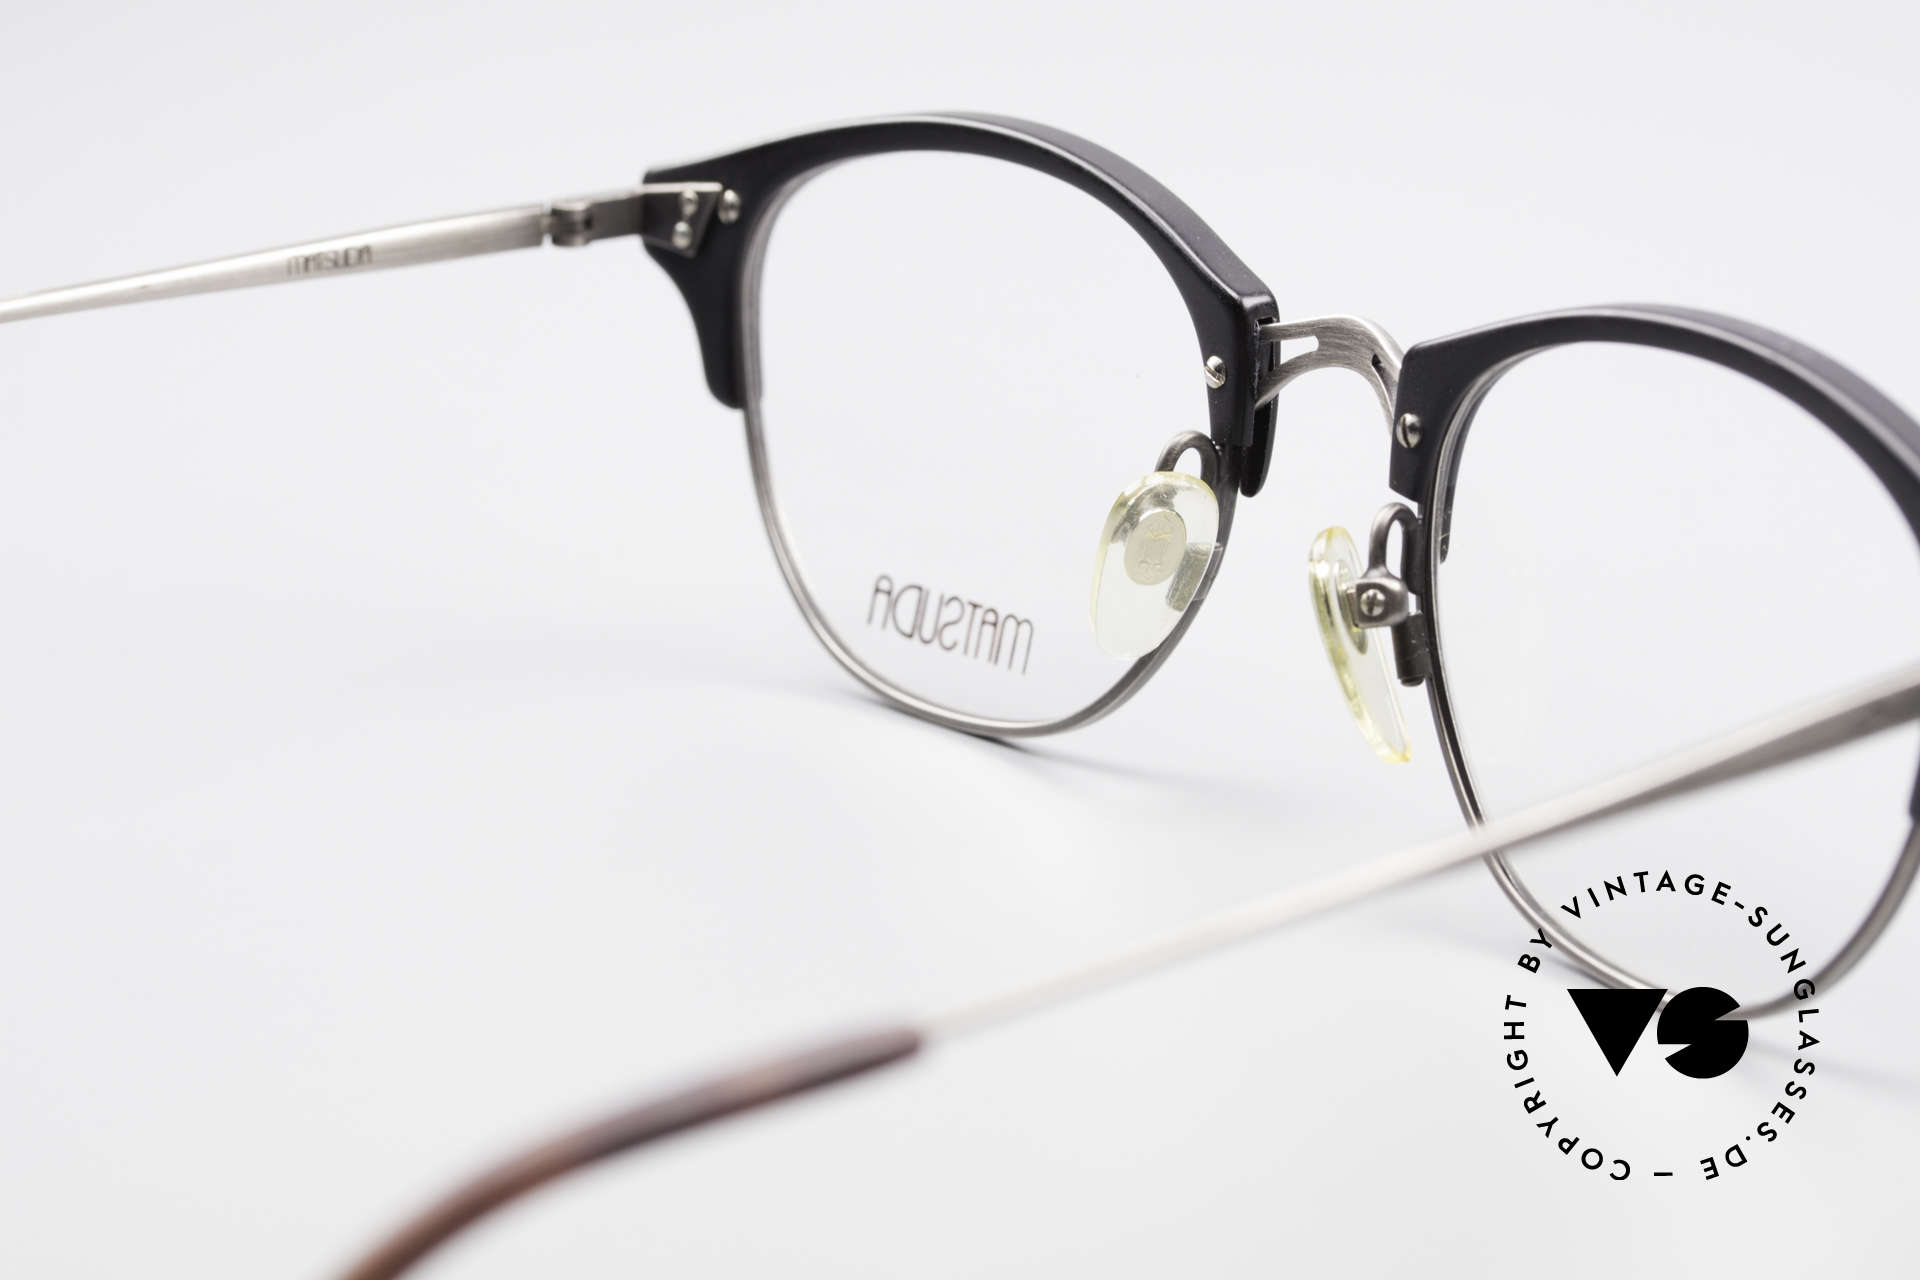 Matsuda 2840 Panto Luxury Eyeglass-Frame, NO RETRO eyeglasses, but a 25 years old ORIGINAL!, Made for Men and Women